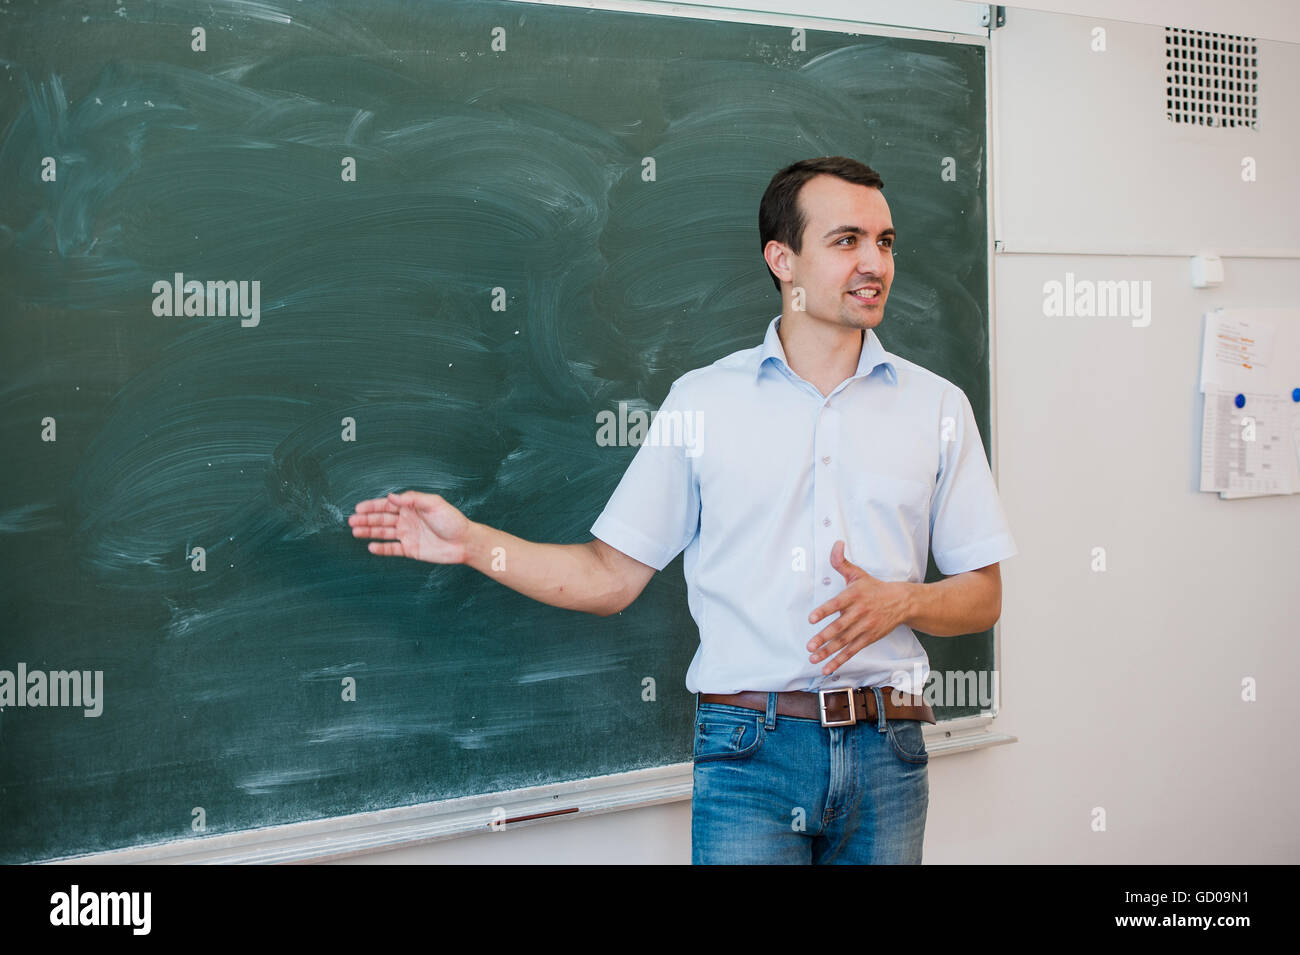 Portrait of young handsome student or teacher in a class pointing at blank chalkboard, talking and smiling - Stock Image